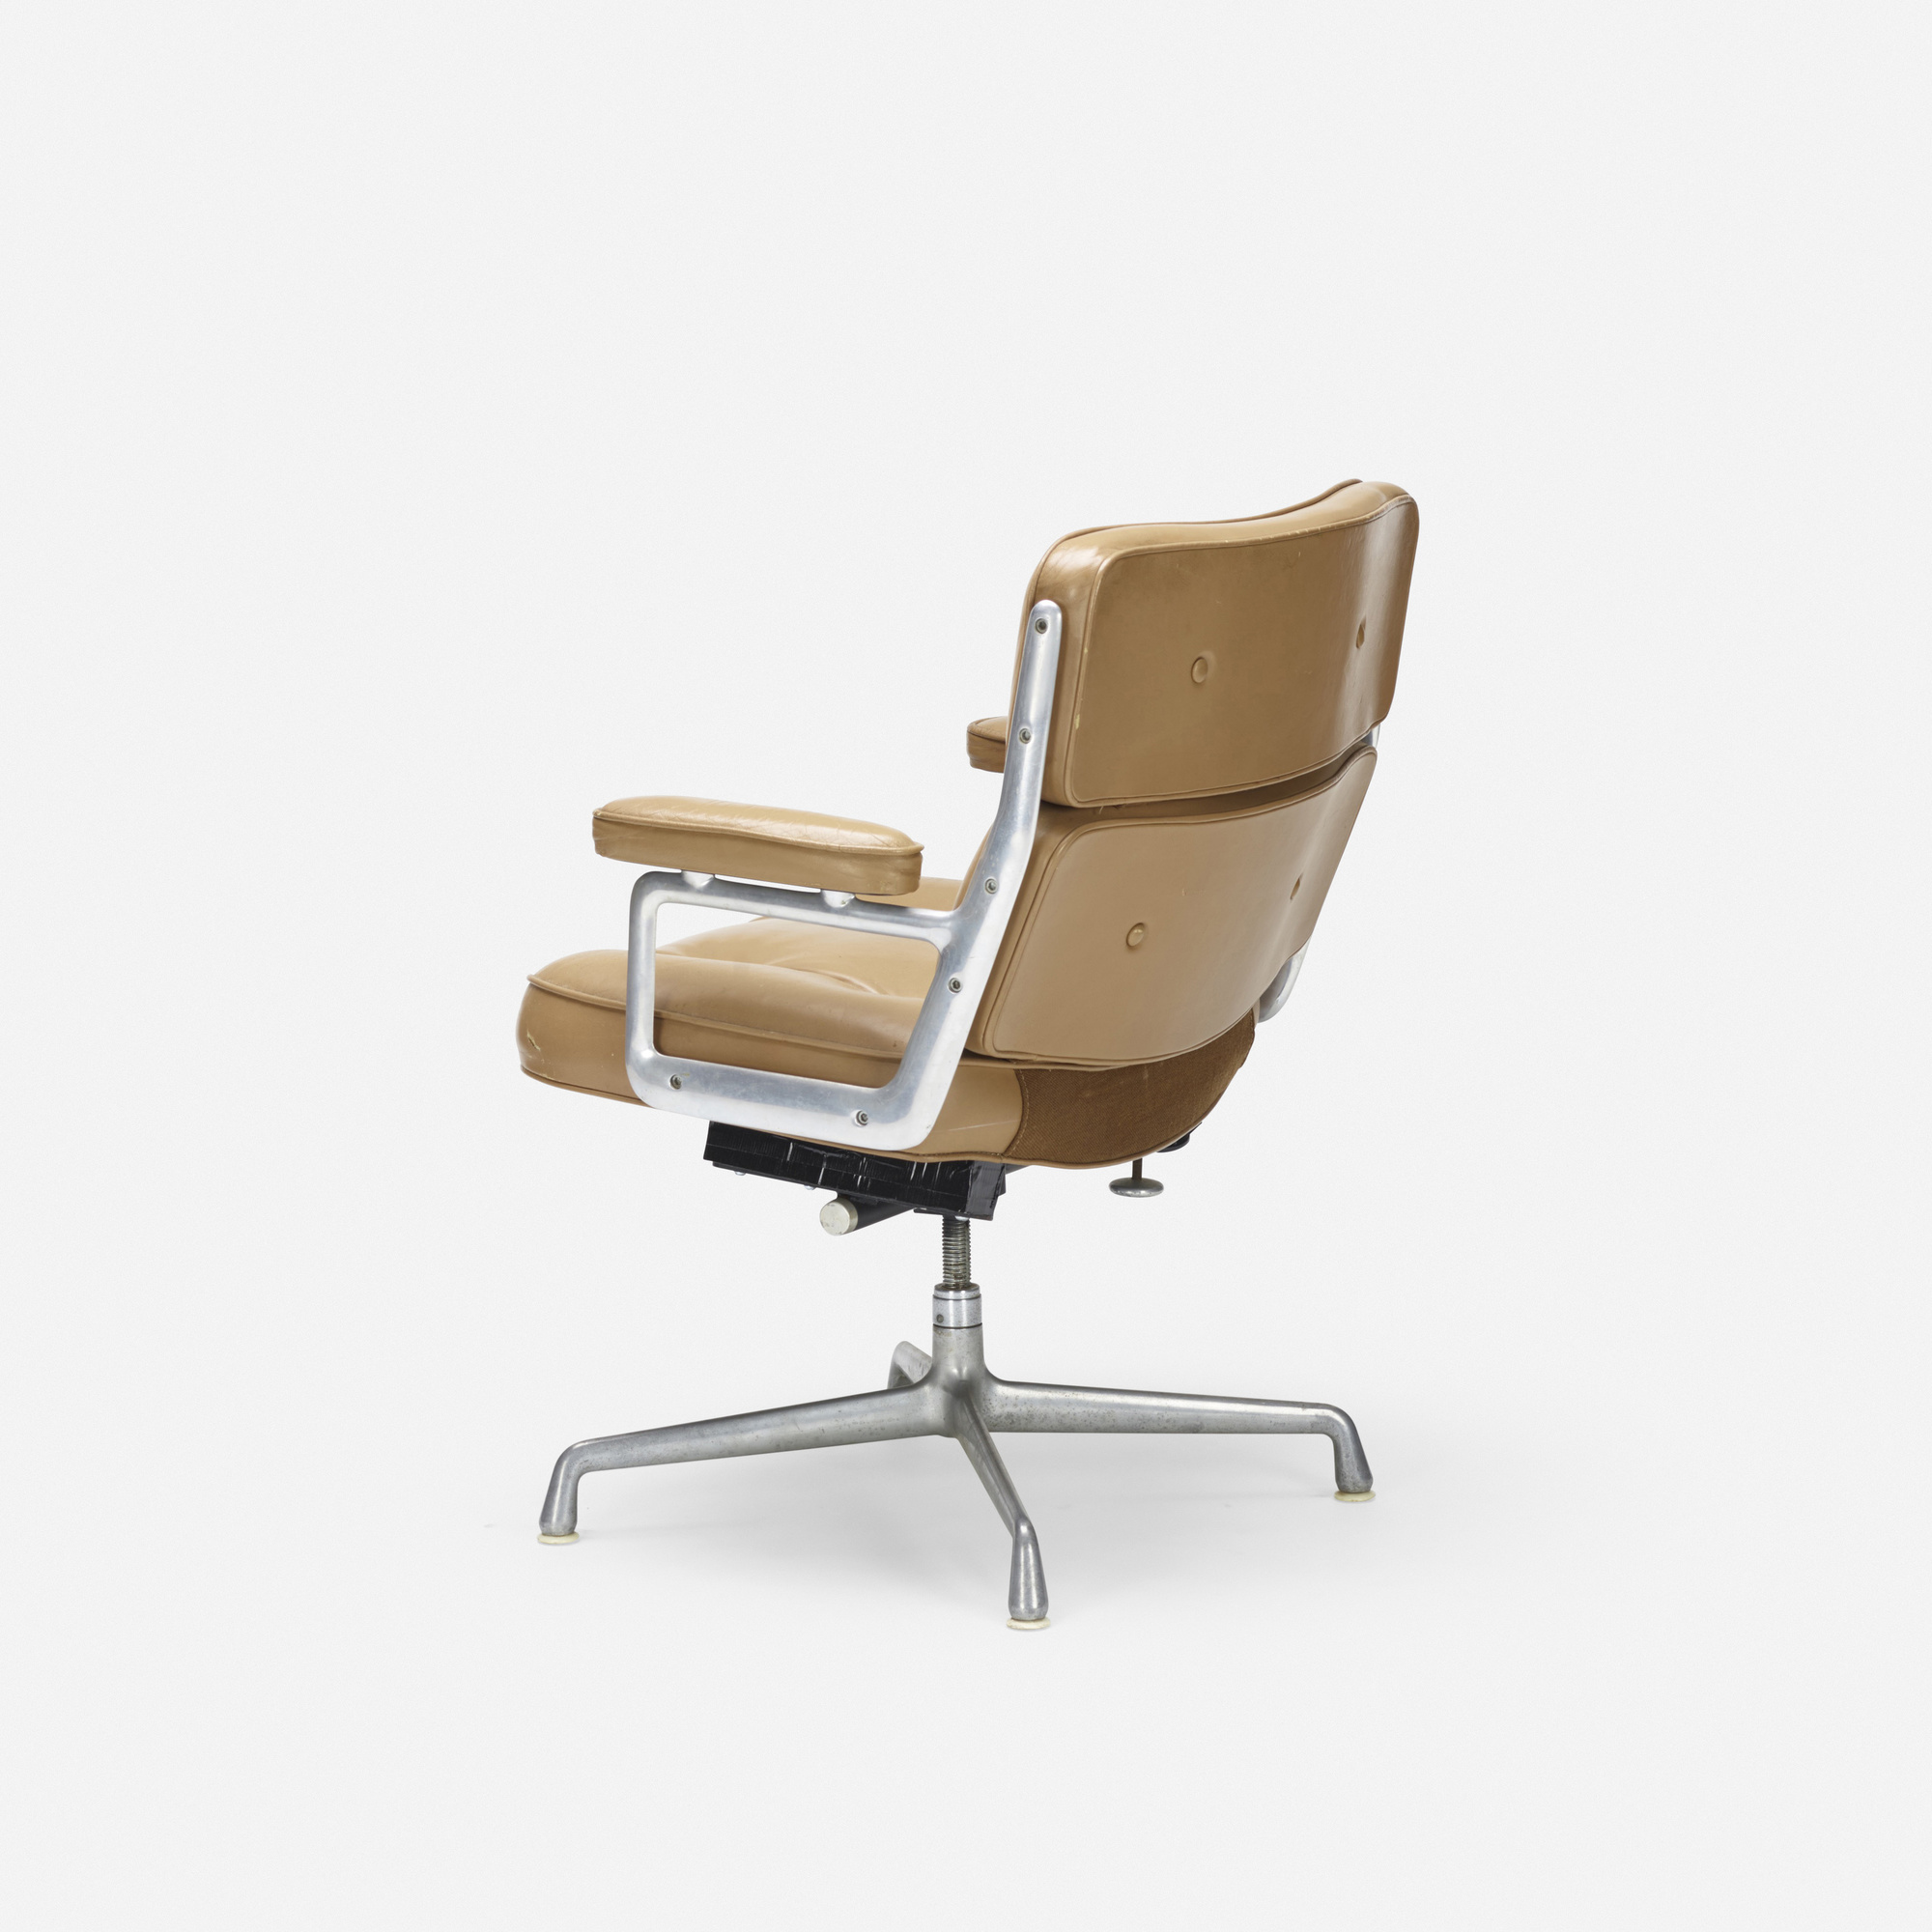 267: Charles and Ray Eames / Time Life armchair (2 of 3)